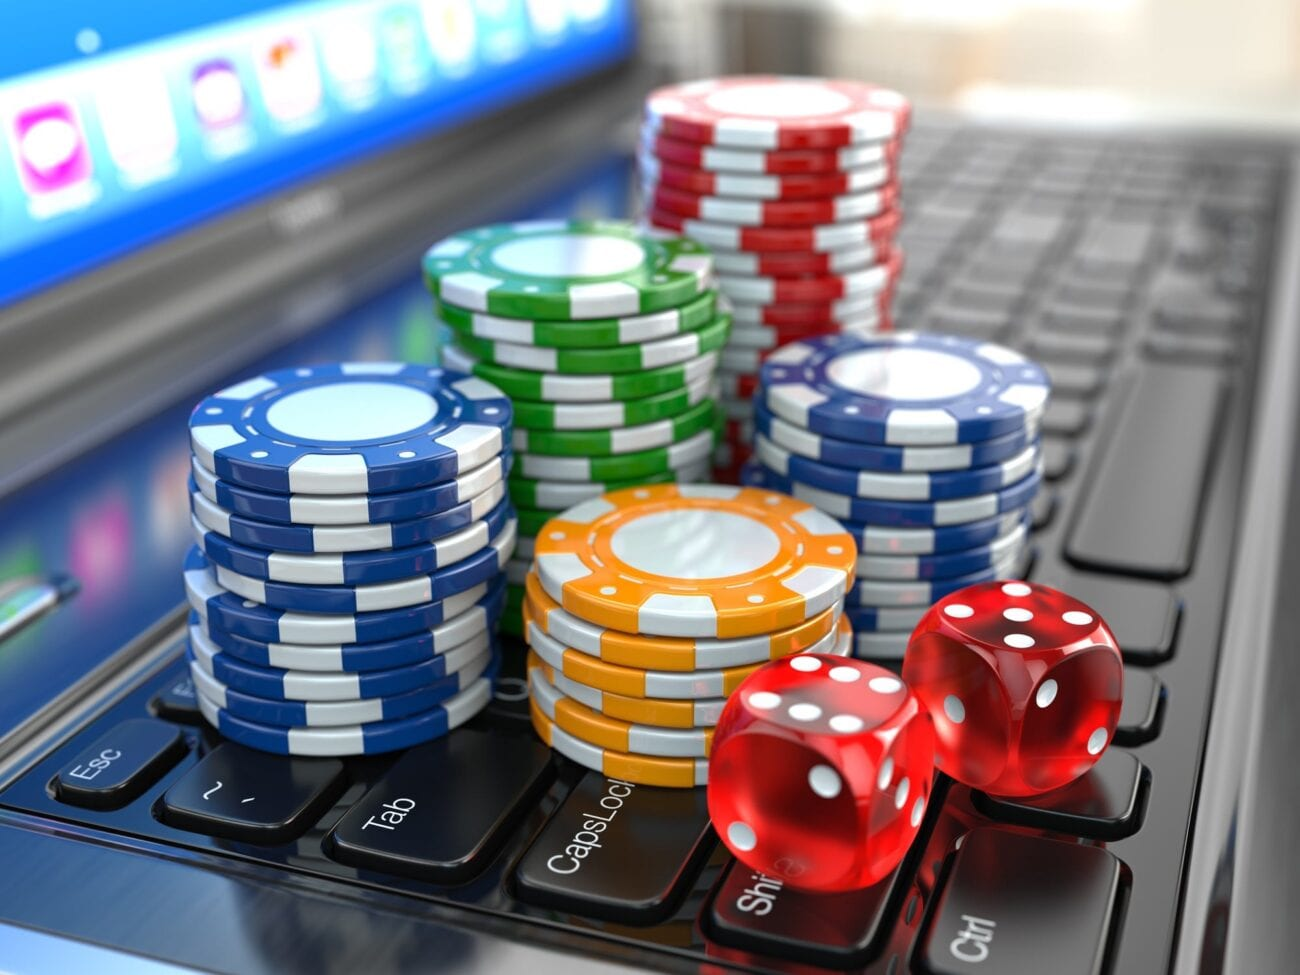 Looking for a fun and safe way to gamble online? Check out how to choose the most trusted gambling website on online casino Malaysia.